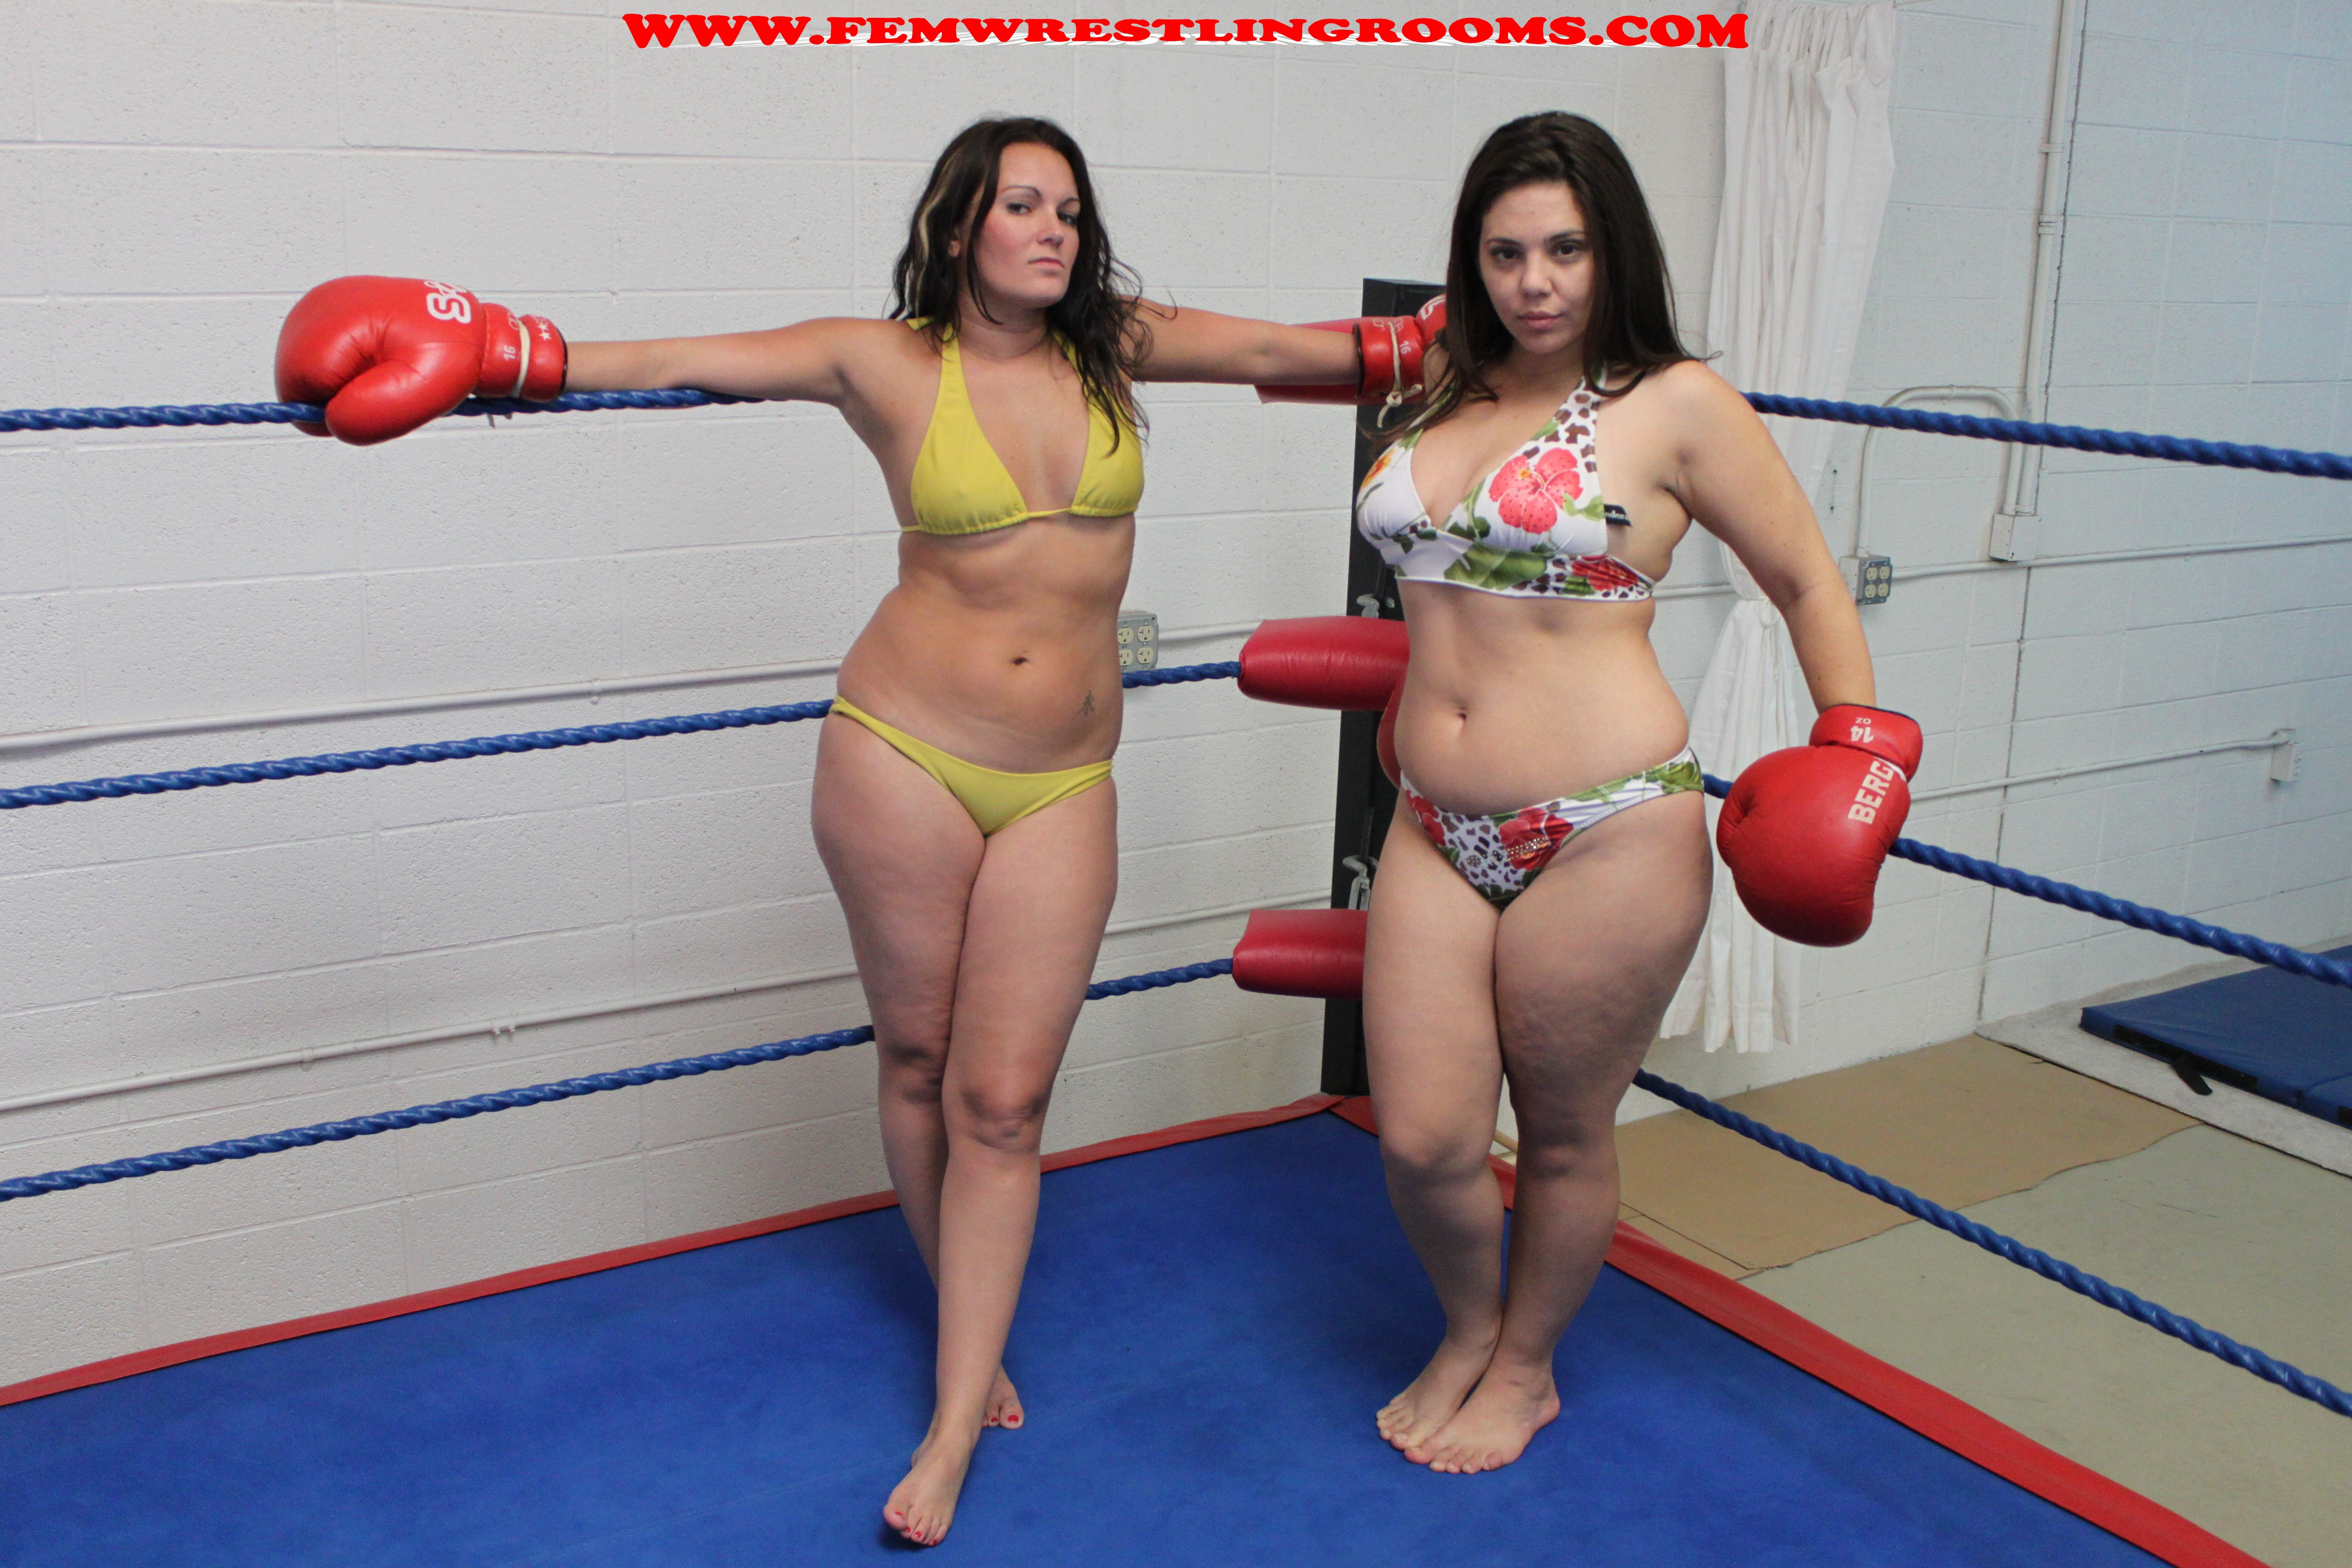 ... org female wrestling zone male vs female the mixed wrestling forum: crazygallery.info/mutiny-mixed-wrestling.html